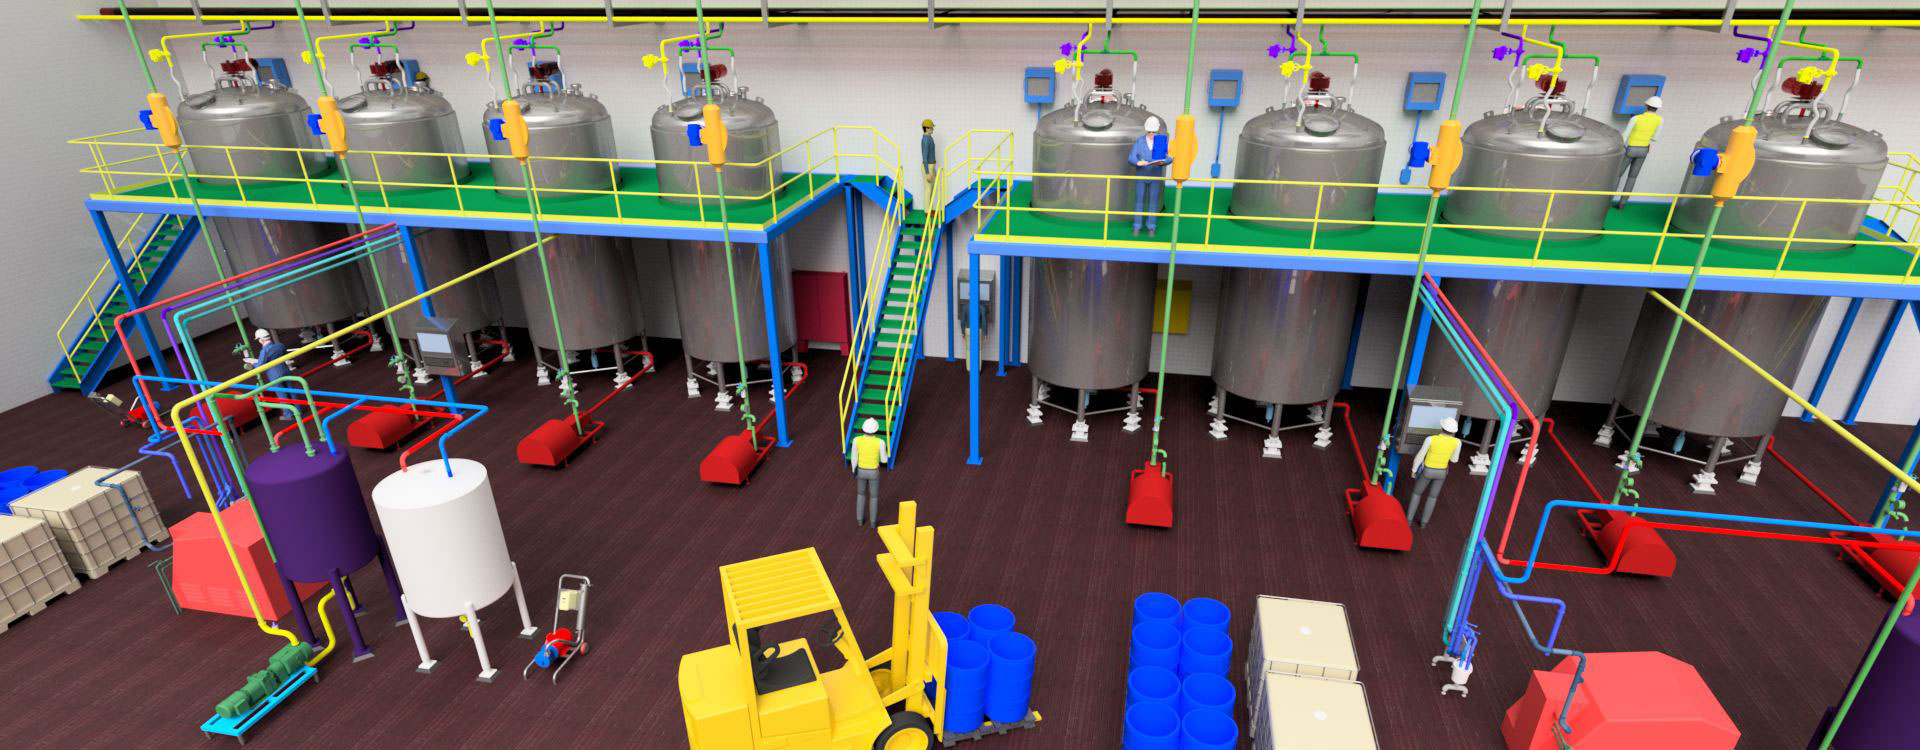 Inside of a bottling facility